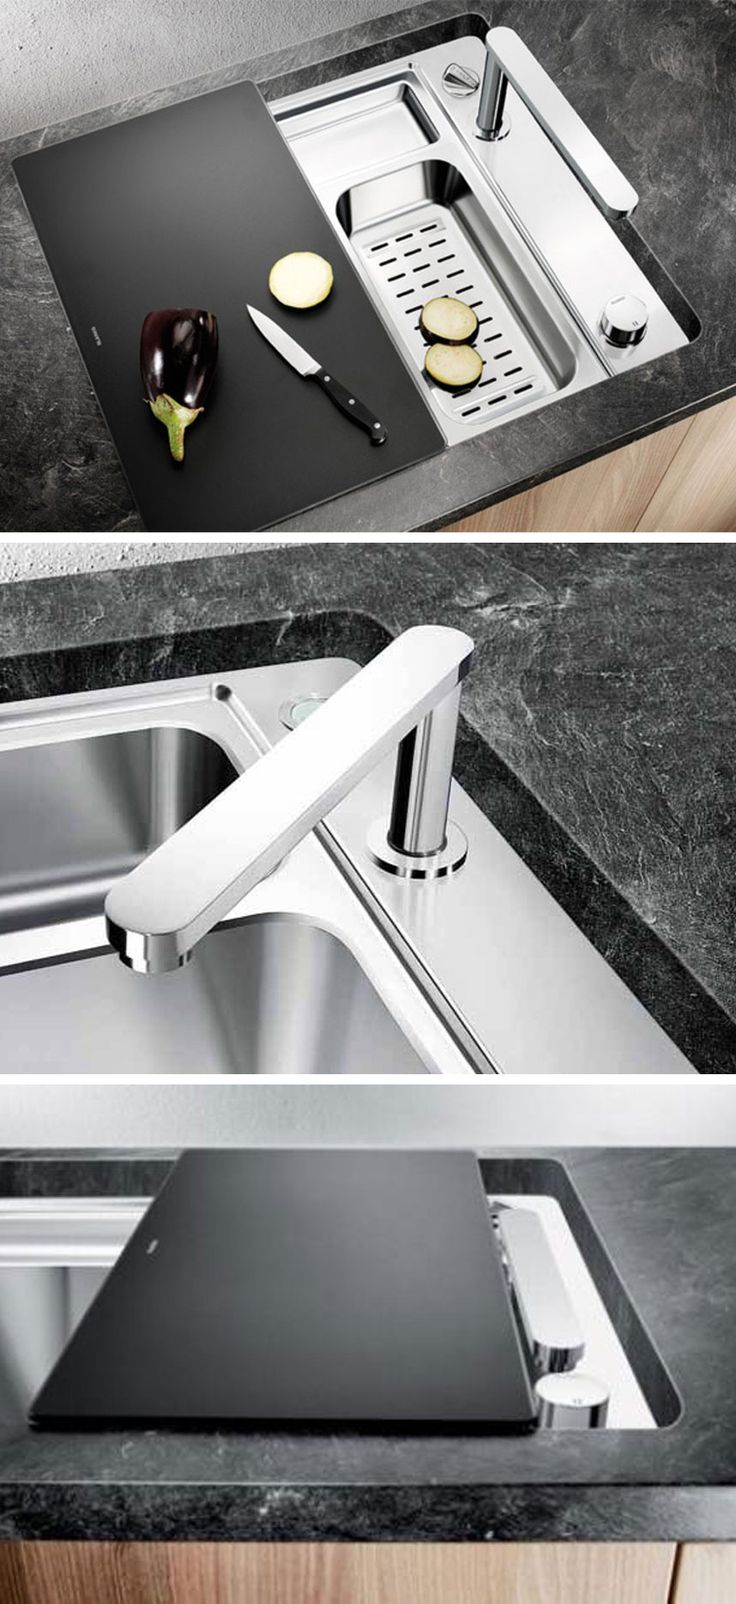 Blanco zerox 700 u stainless steel undermount sink - The Blanco Eloscope Retractable And Concealable Tap Great For Small Kitchens And Bars Sadly